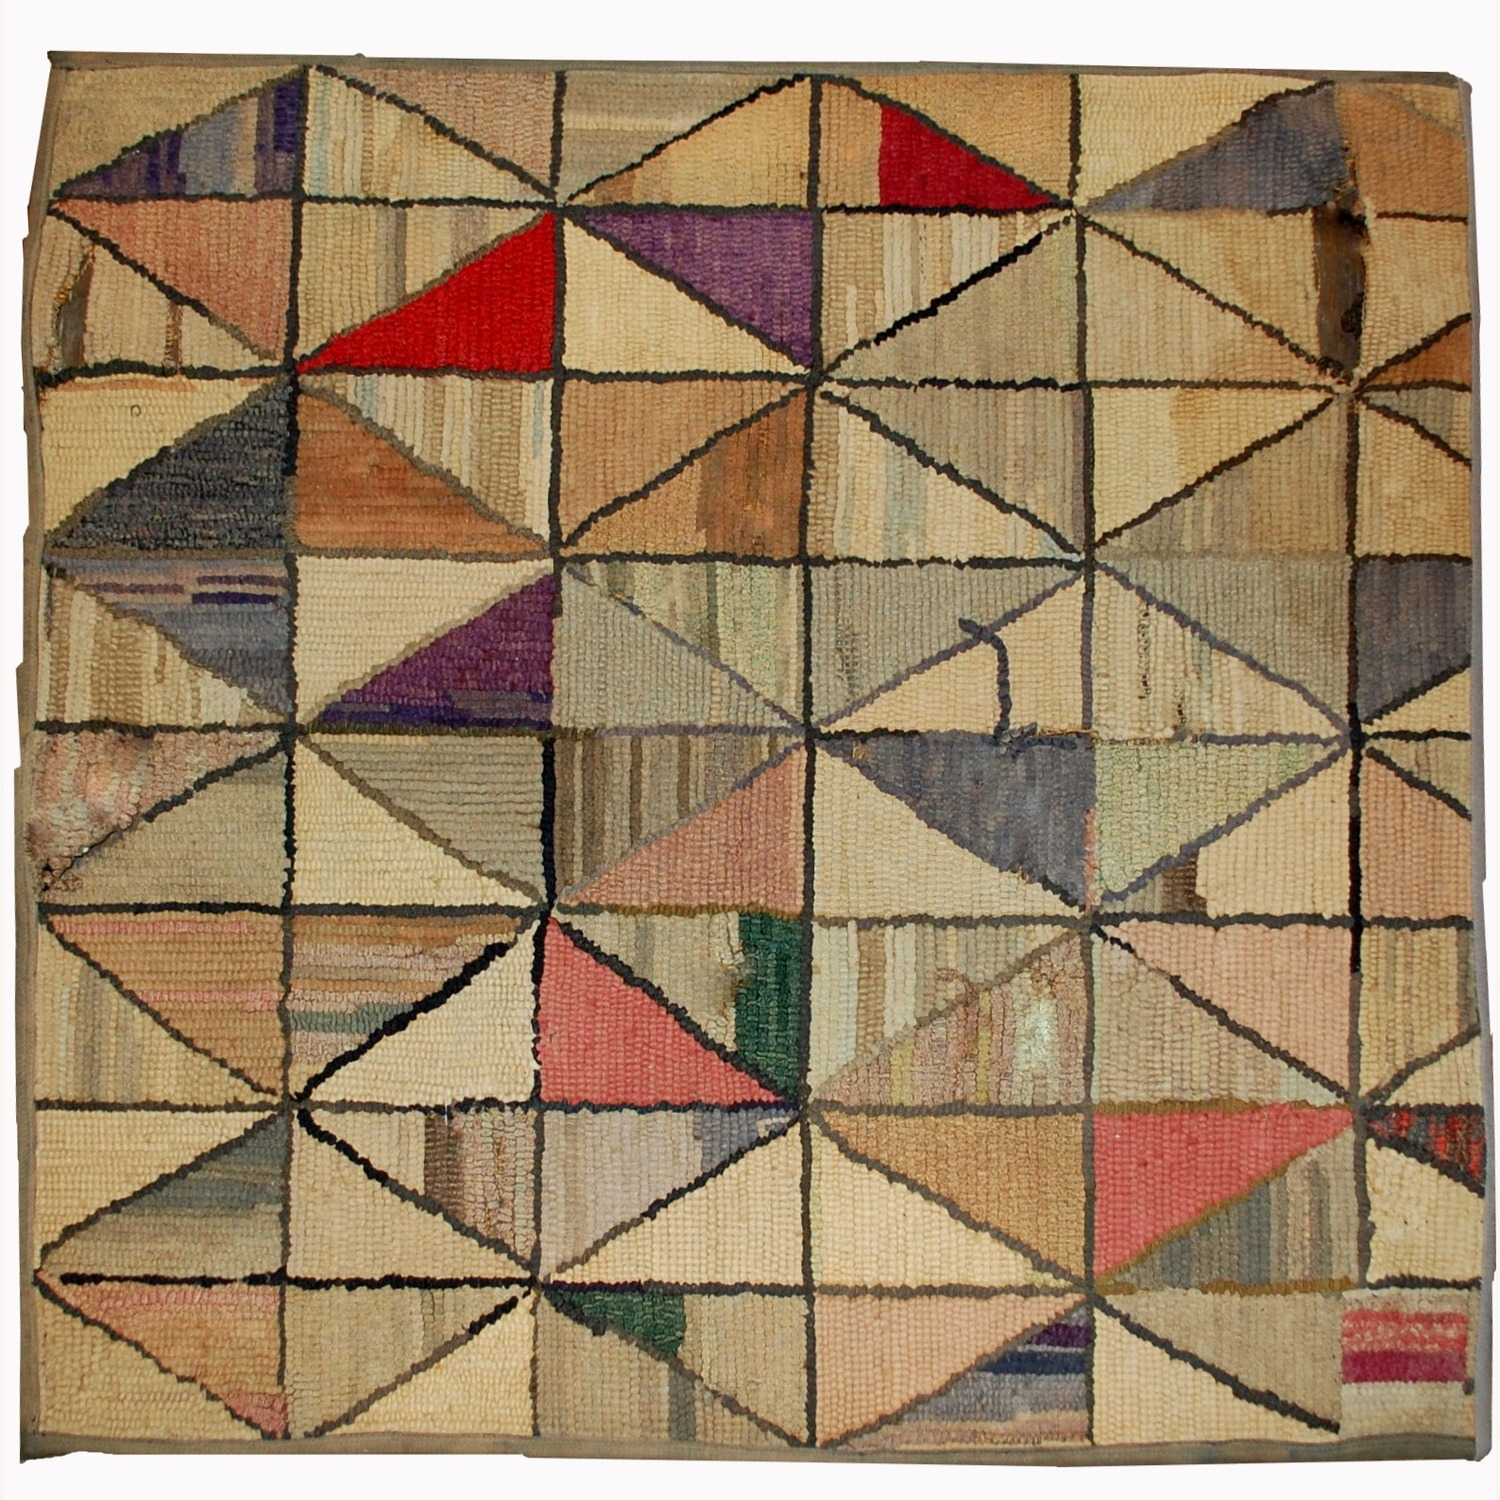 Handmade Antique square American Hooked Rug - image-1